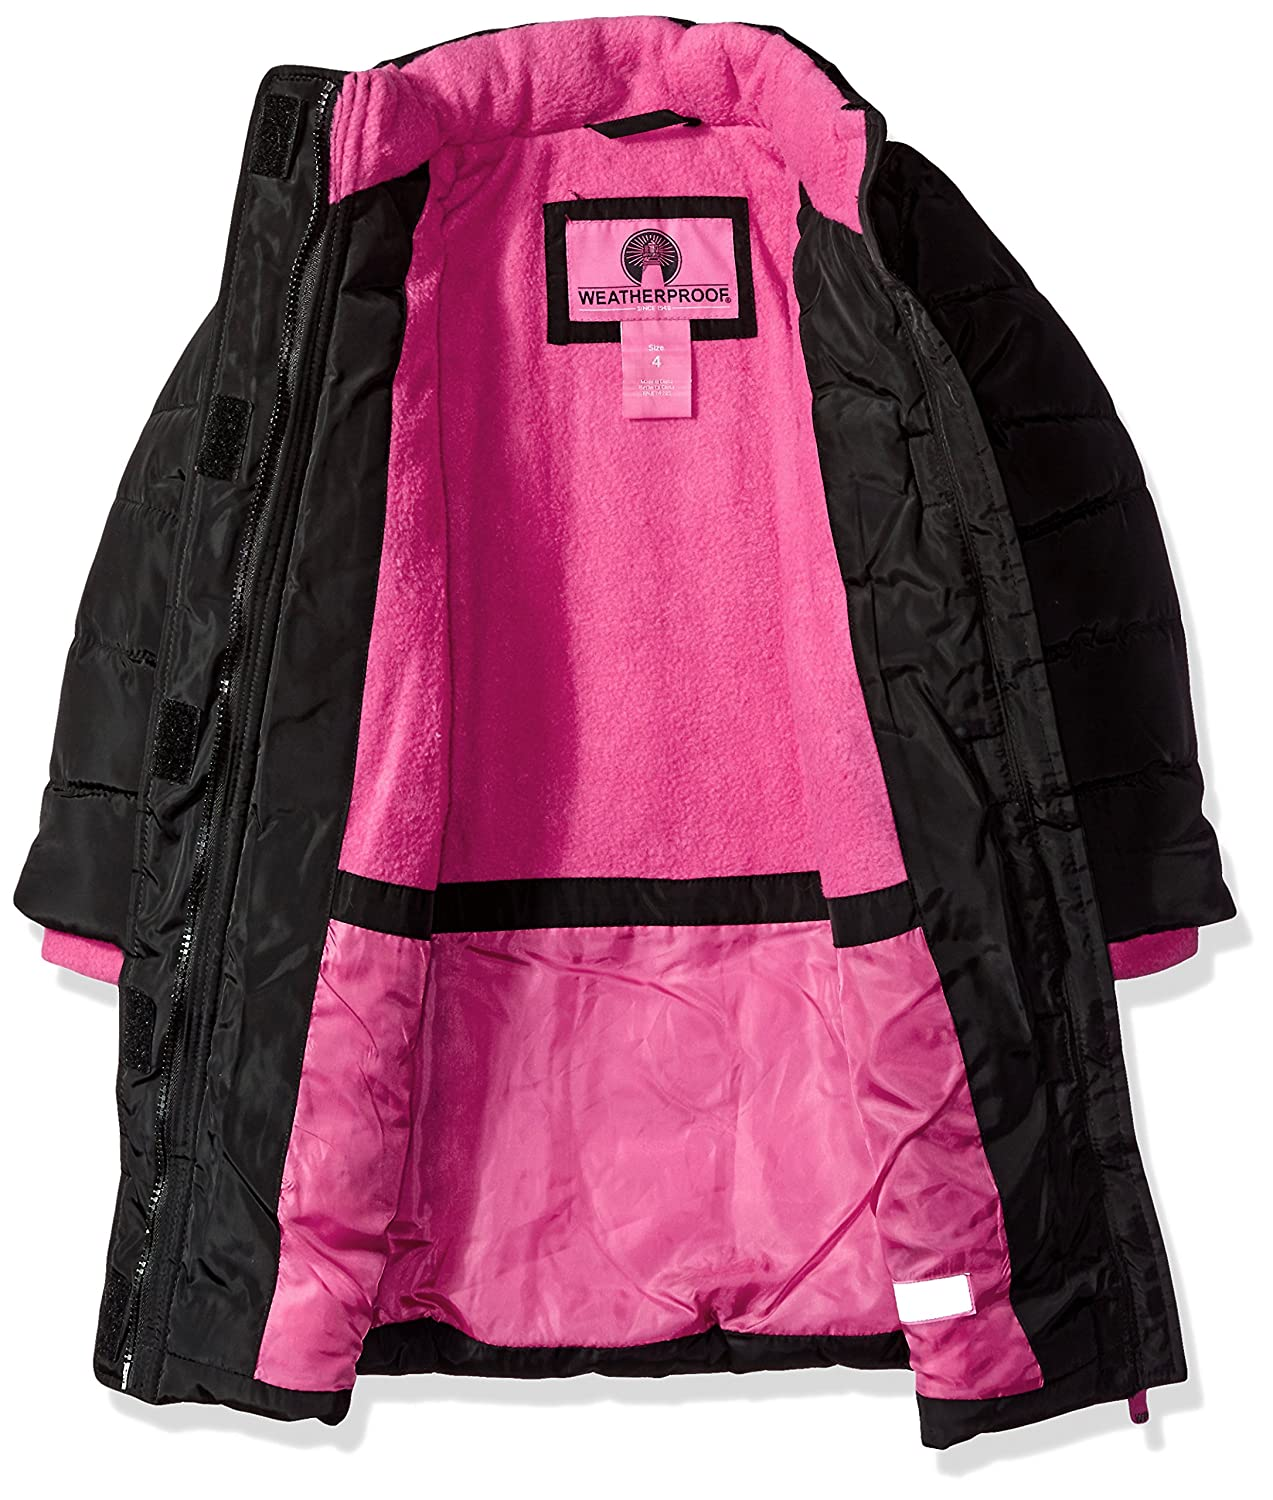 07ab3eed1 Weatherproof Girls  Outerwear Jacket (More Styles Available)  Amazon ...